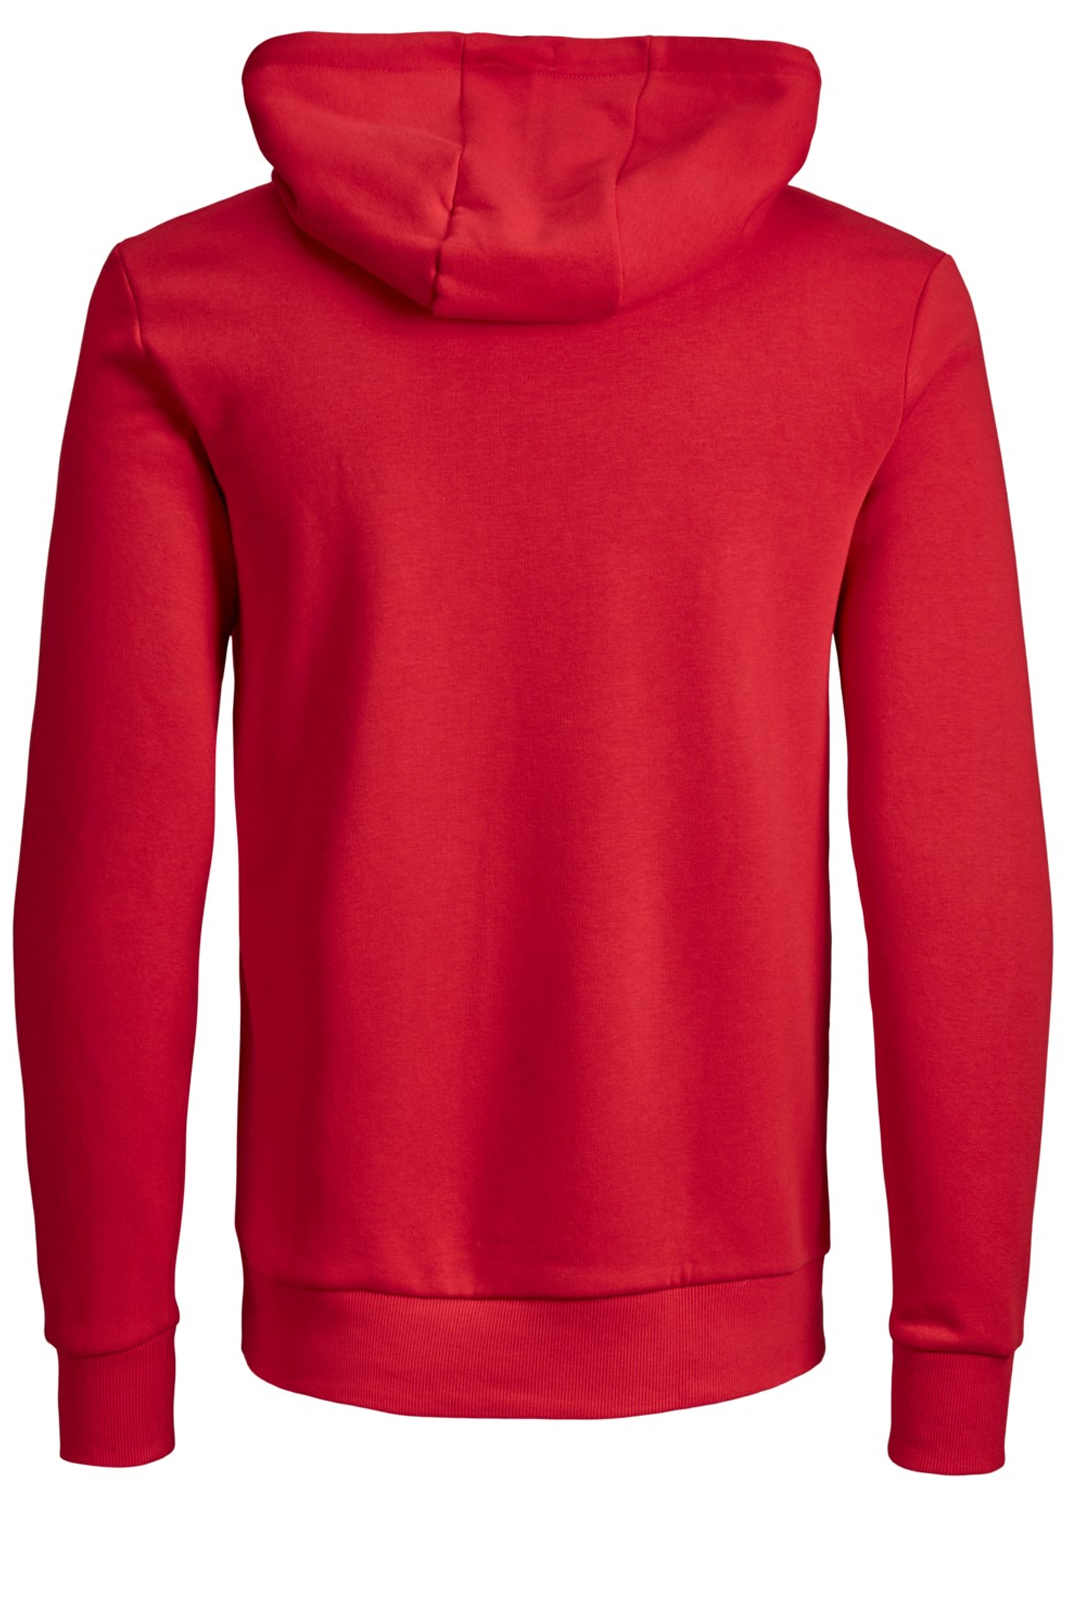 JACK AND JONES SWEAT A CAPUCHE AVEC LOGO PRINTE ARMANDO ROUGE HOMME